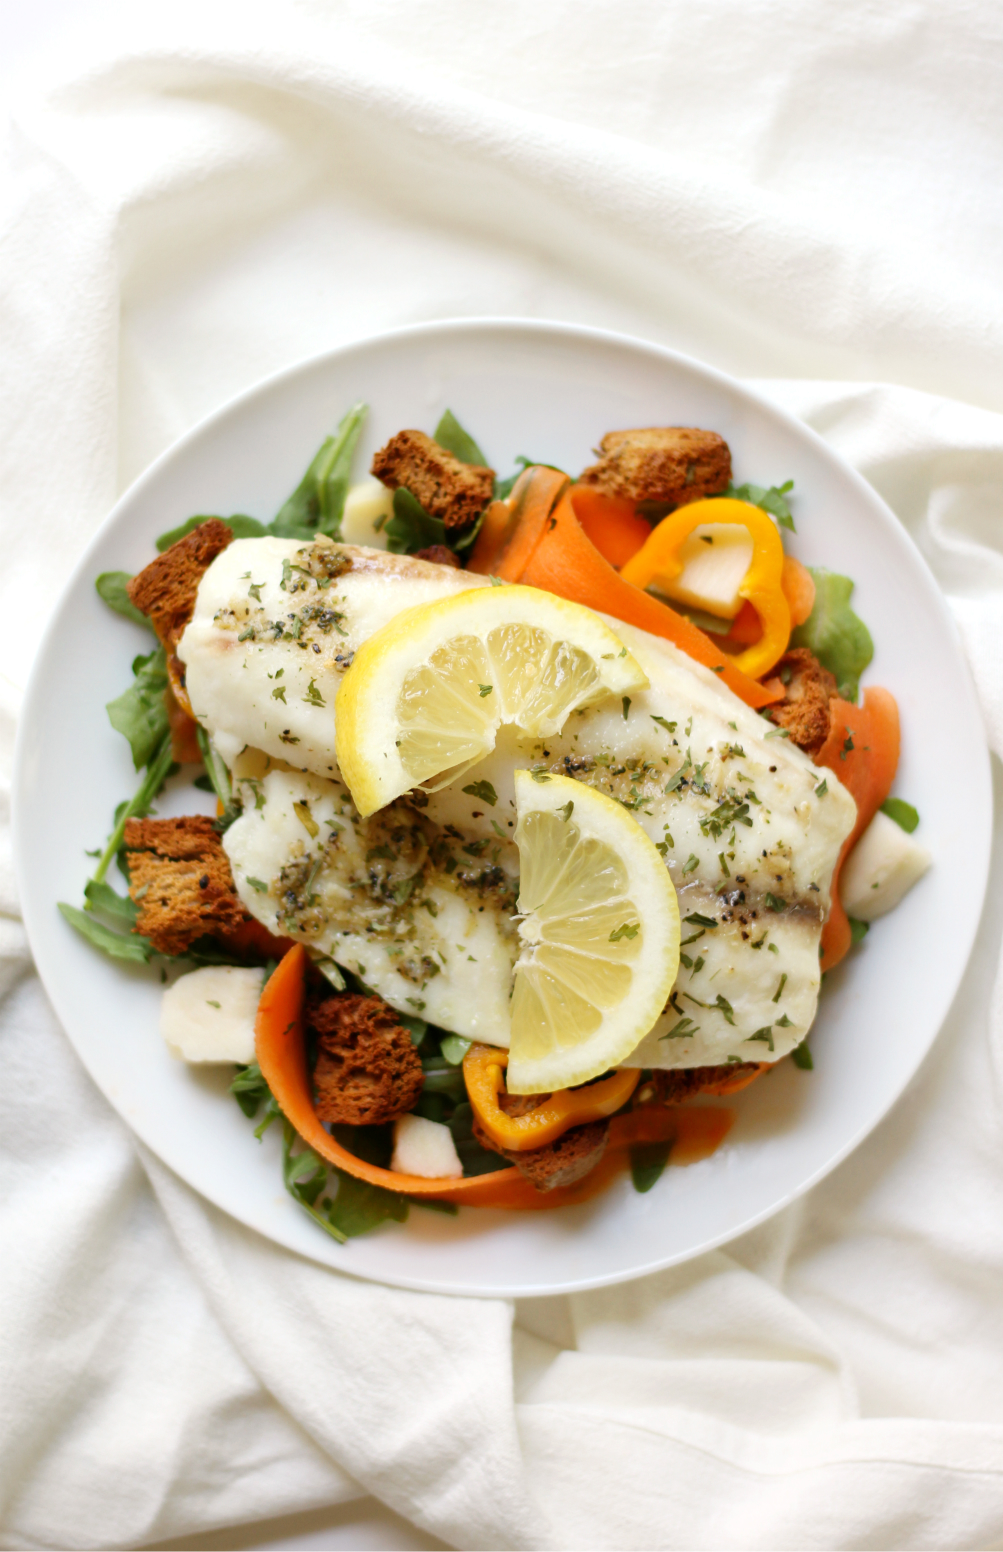 Lemon Pepper Tilapia + Spring Arugula Salad & Homemade Garlic Herb Croutons | Strength and Sunshine @RebeccaGF666 A simple spring weeknight dinner recipe for lemon pepper tilapia with a fresh arugula salad and homemade gluten-free, dairy-free garlic herb croutons! Ready in 20 minutes or less so you have time to sit down and enjoy!